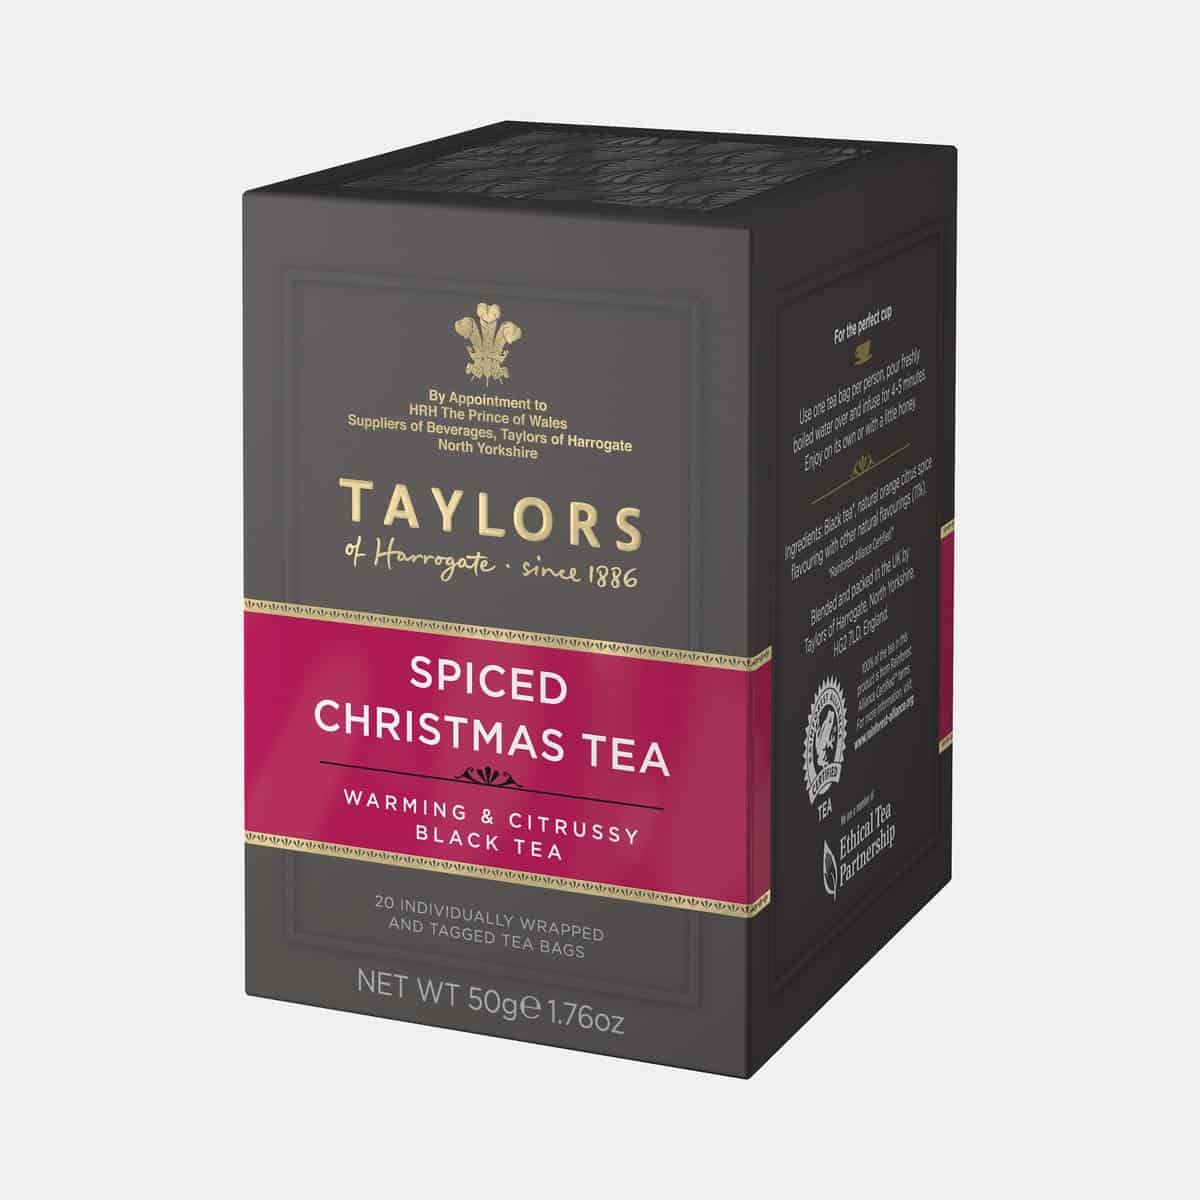 Taylors of Harrogate Spiced Christmas Tea 50g